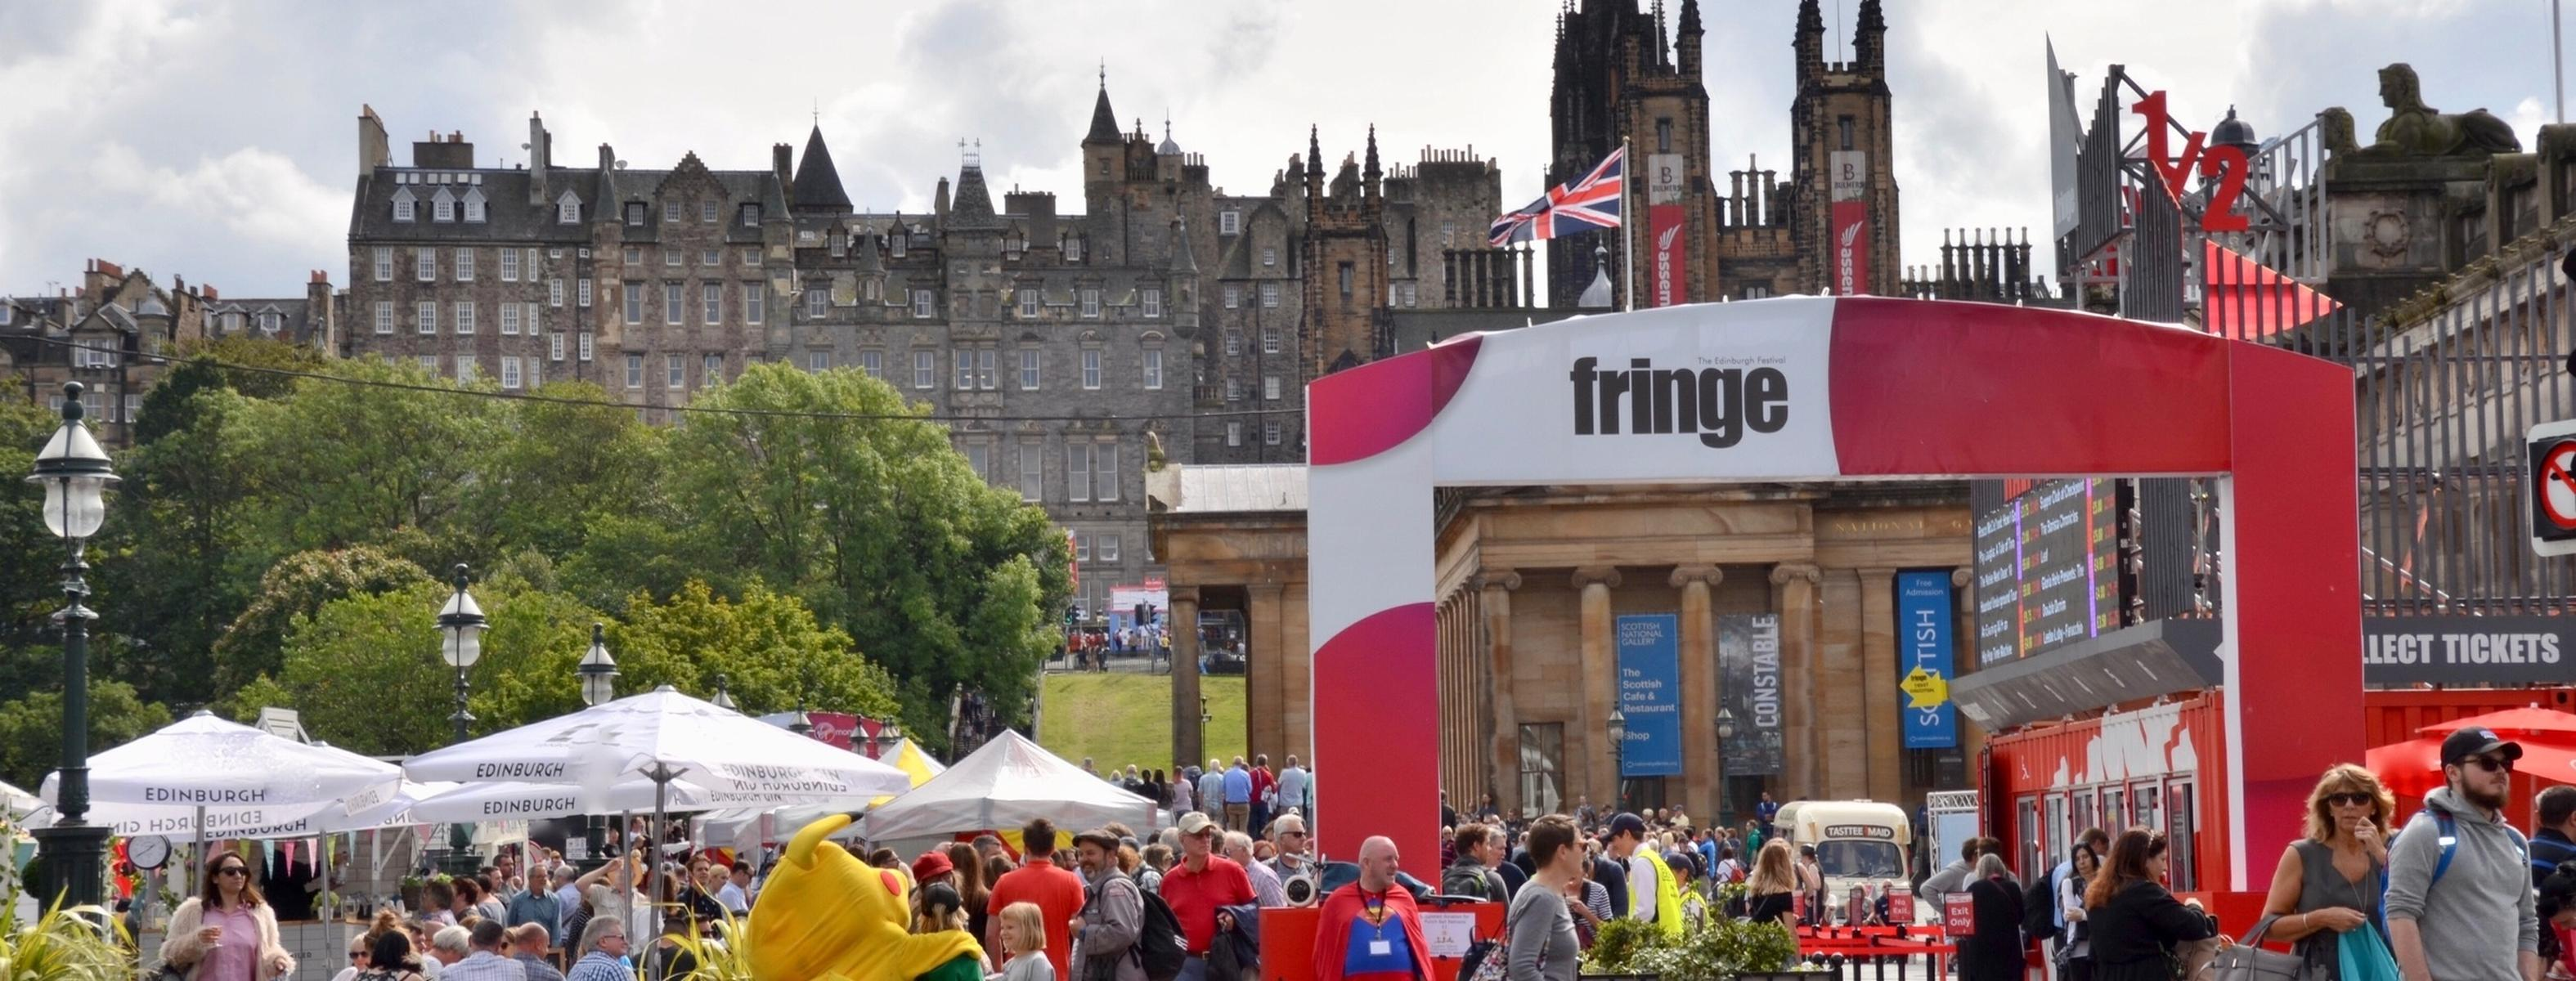 Young Talent Wanted For Edinburgh Fringe Festival Production